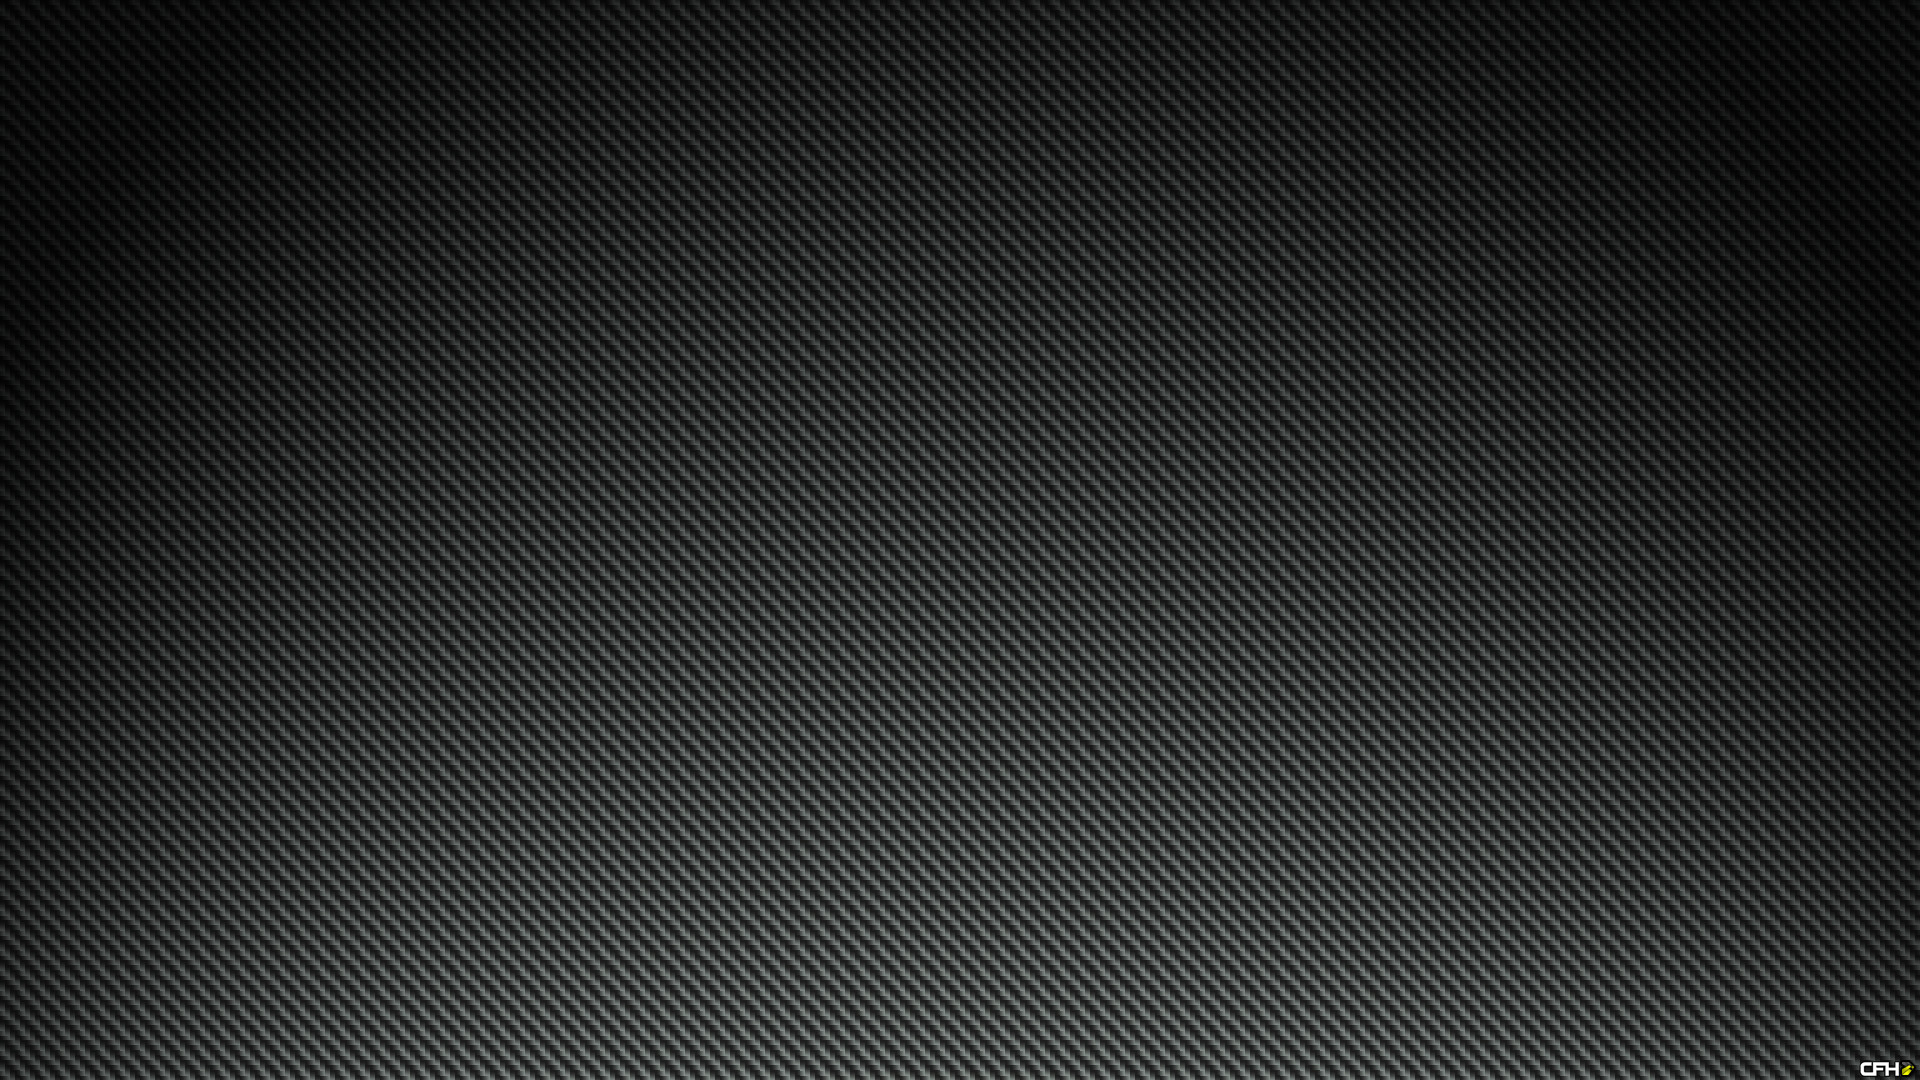 Carbon Fiber Hd Wallpaper 74 Images